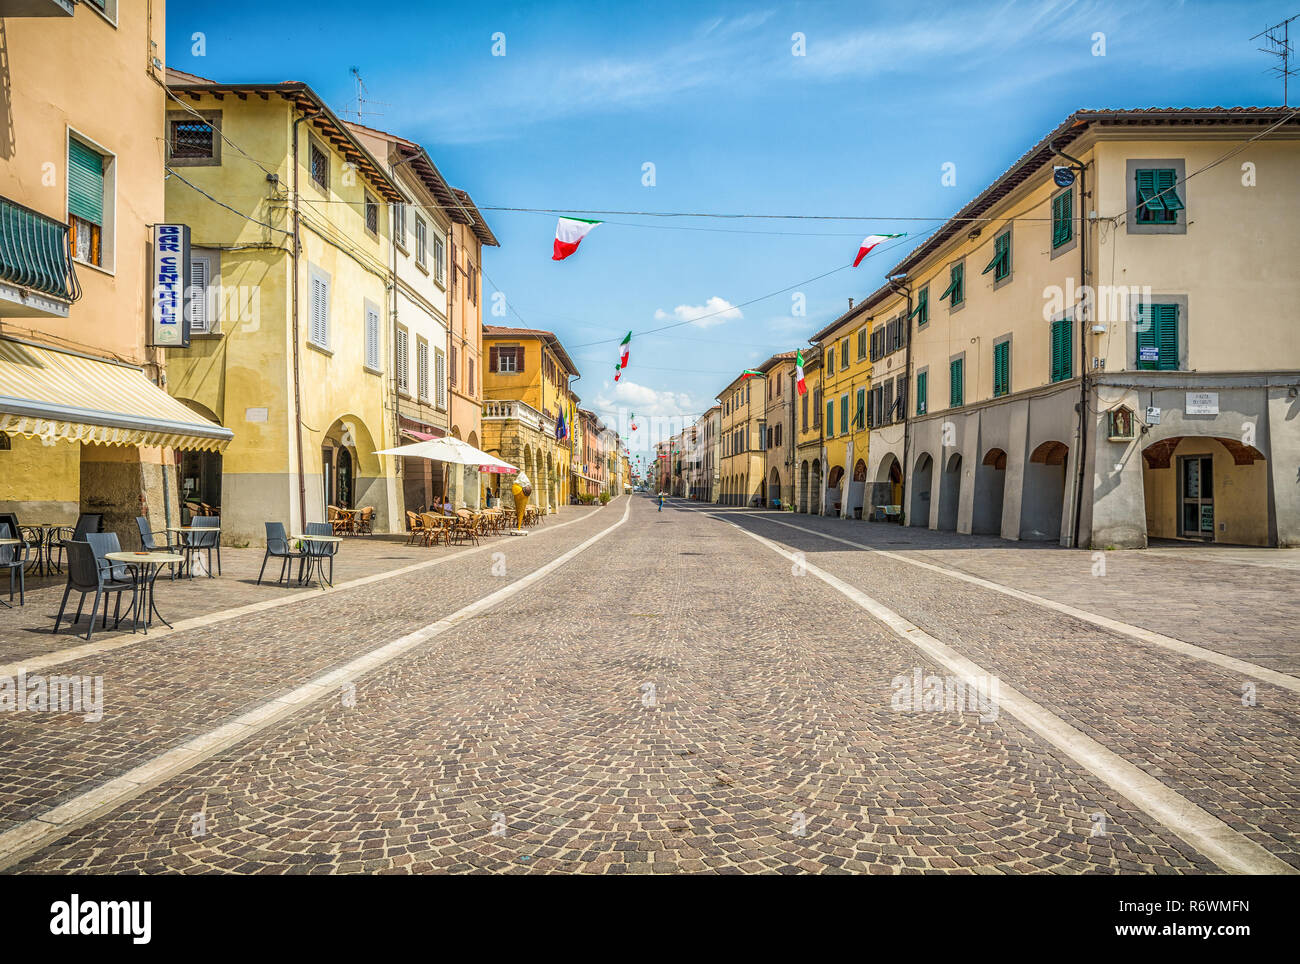 main road of the town of Cascina, Province of Pisa, Tuscany, Italy Stock Photo